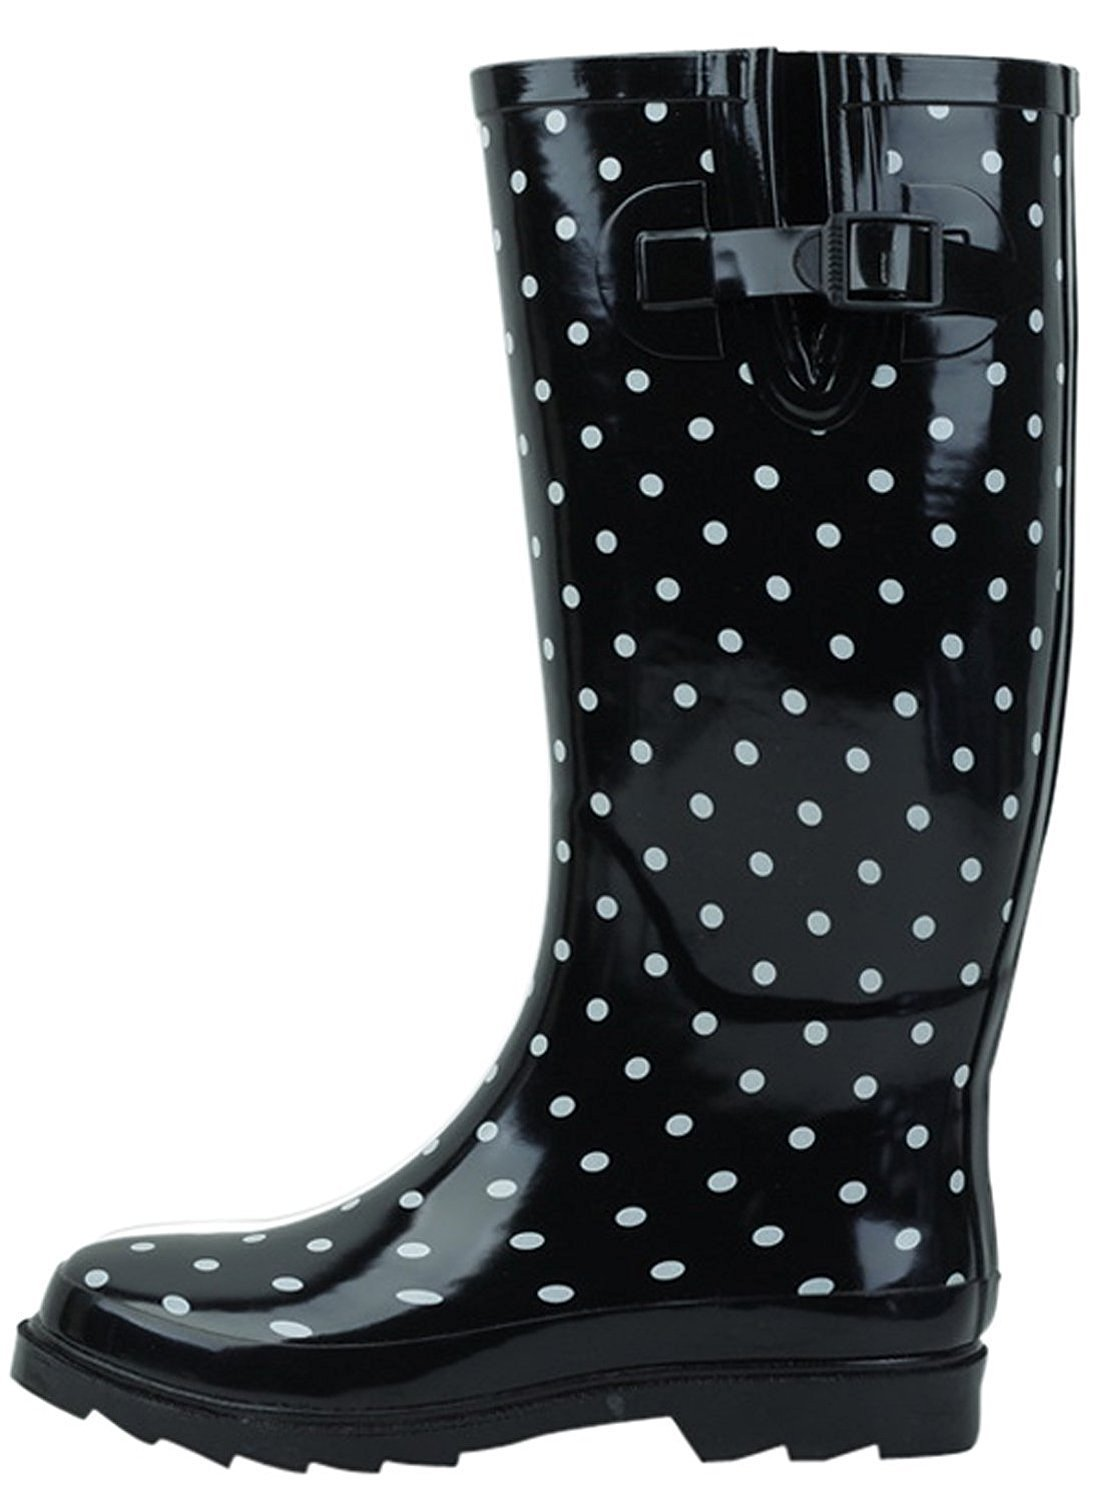 SBC Women's Rain Boots Adjustable Buckle Fashion Mid Calf Wellies Rubber Knee High Snow Multiple Styles (9 B(M) US, Black Dots)